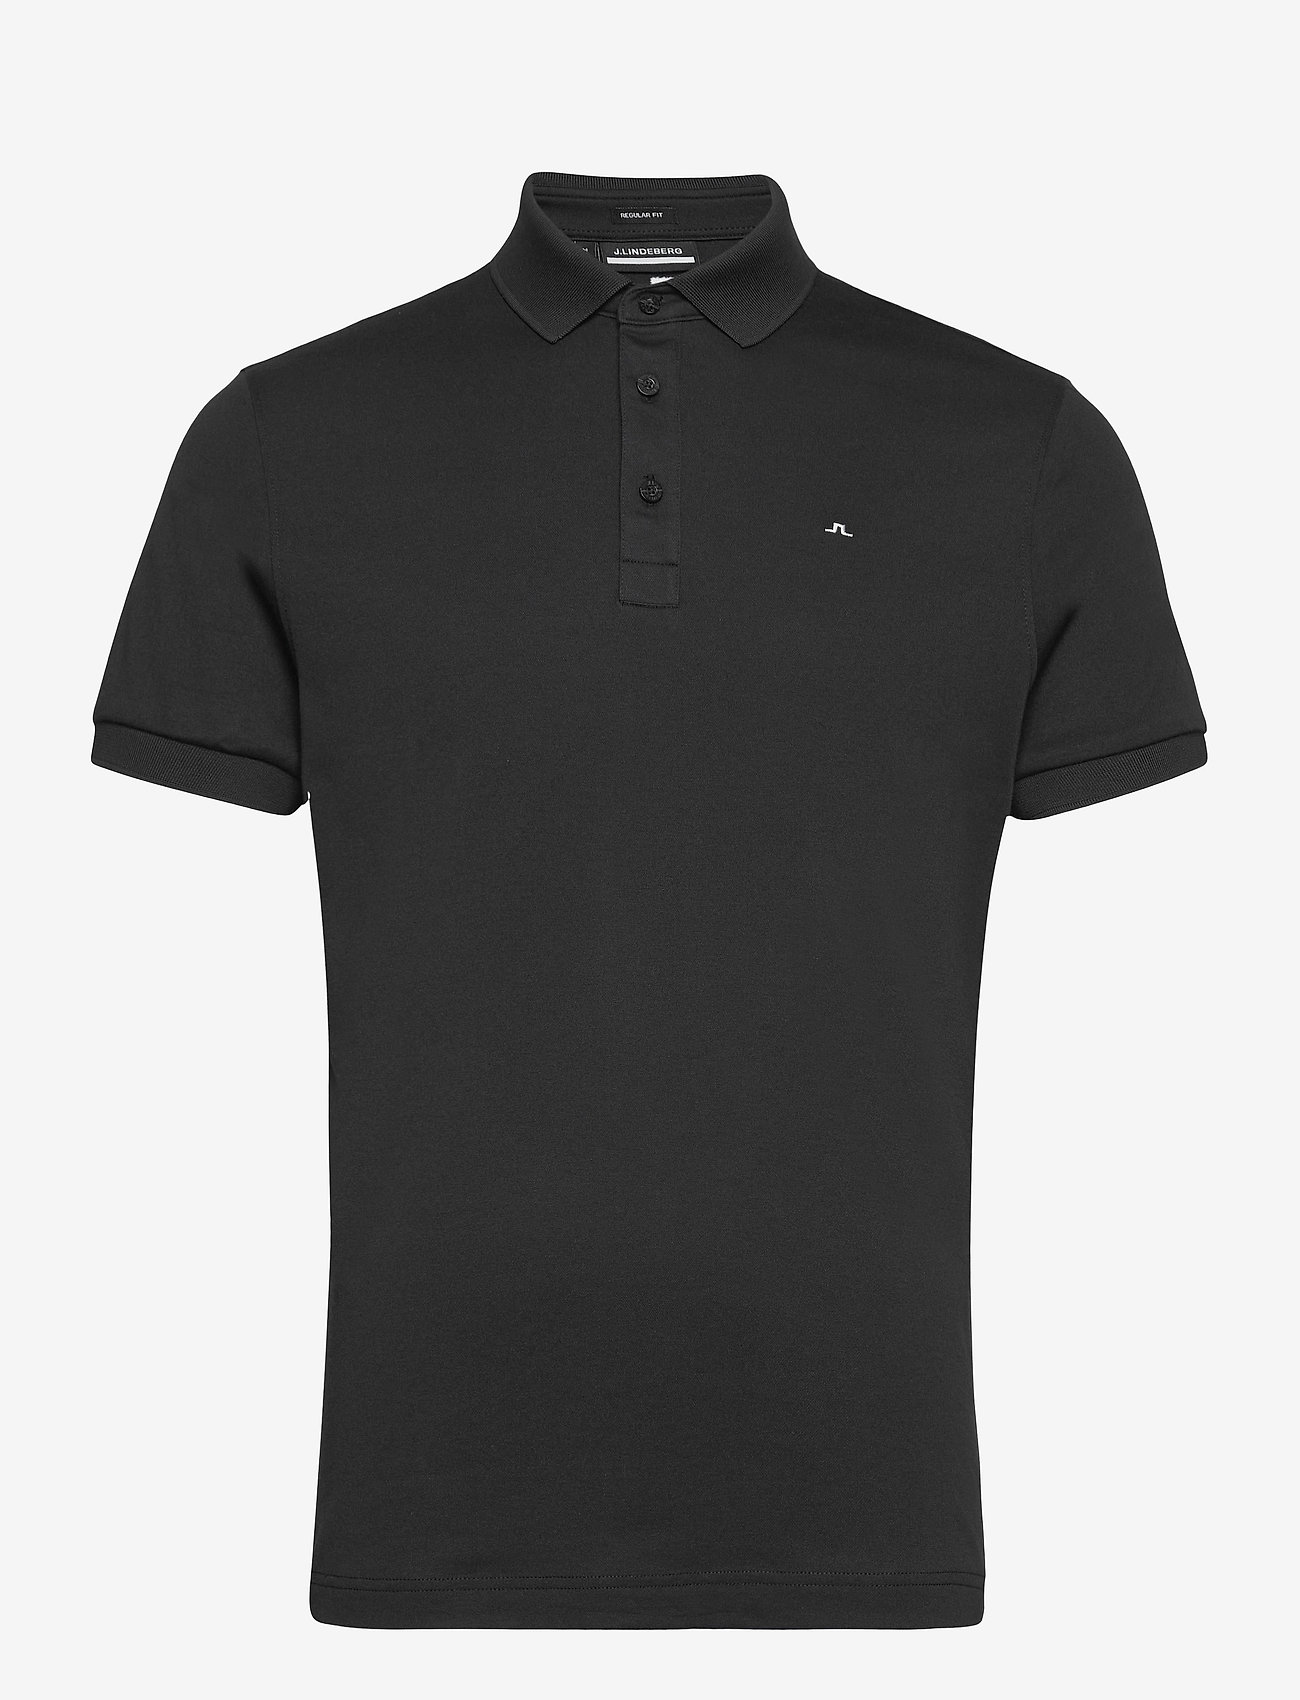 J. Lindeberg Golf - Stan Regular Fit Golf Polo - kurzärmelig - black - 1